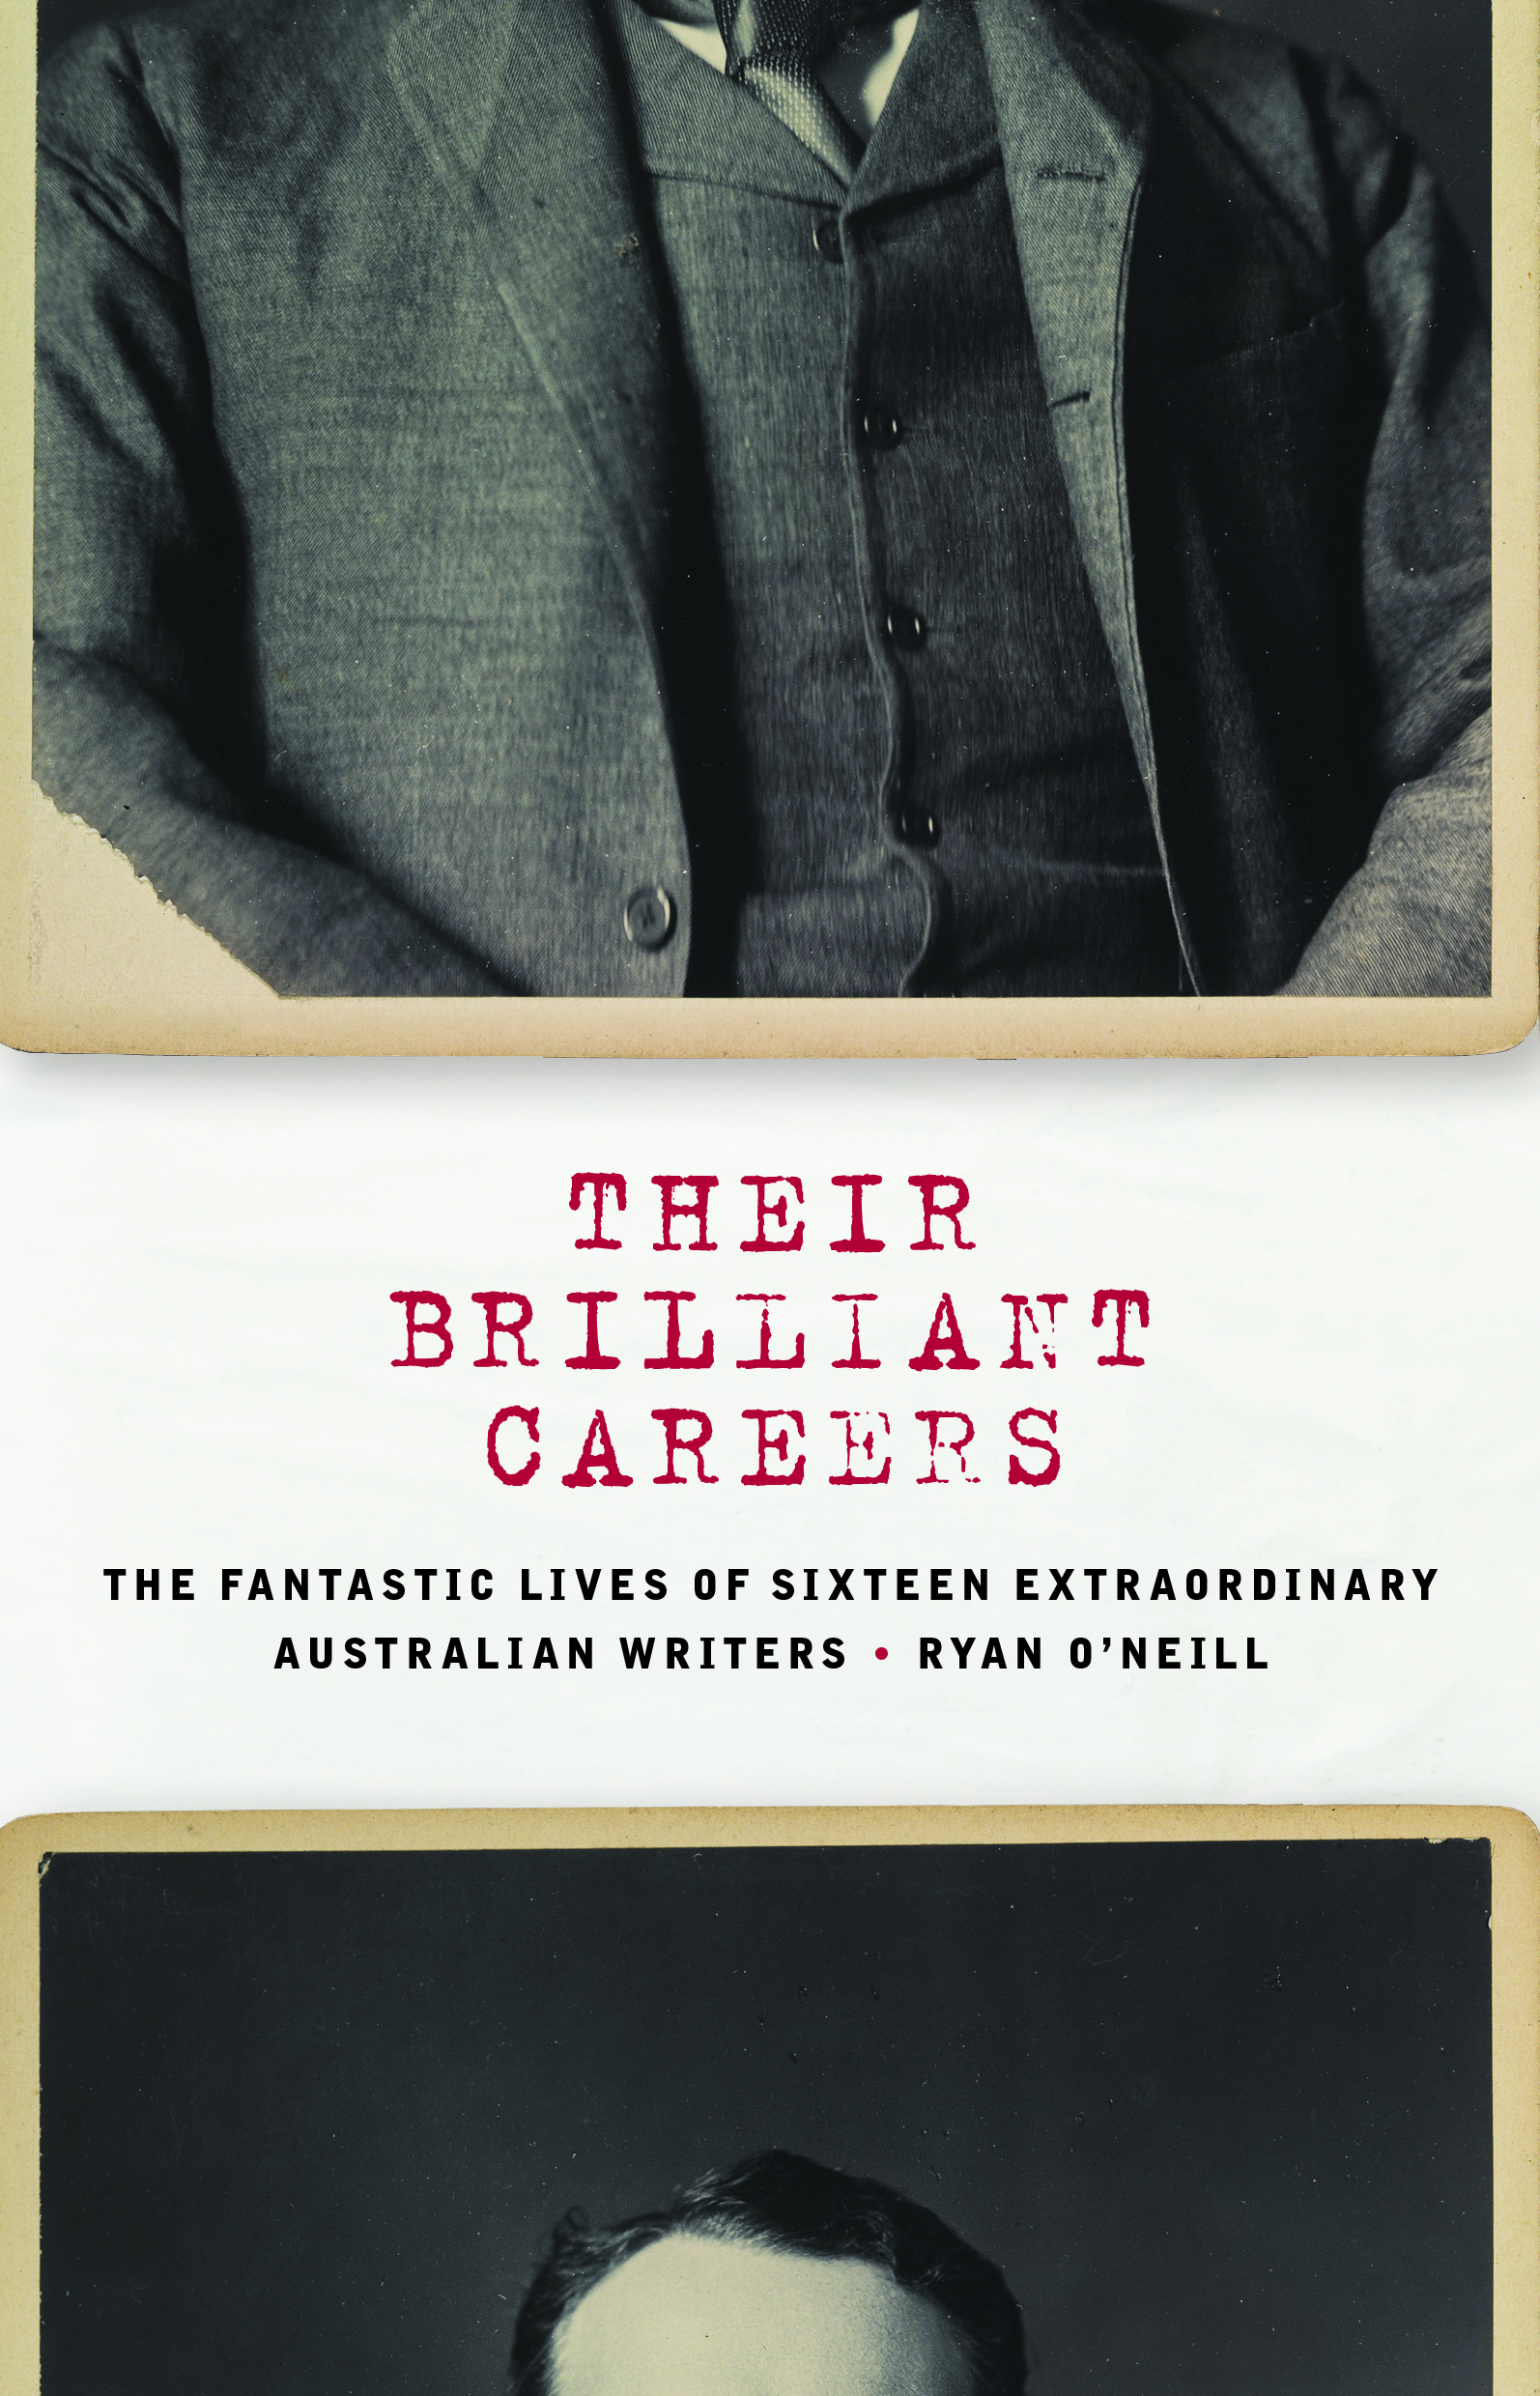 Book cover of Their Brilliant Careers by Ryan O'Neil